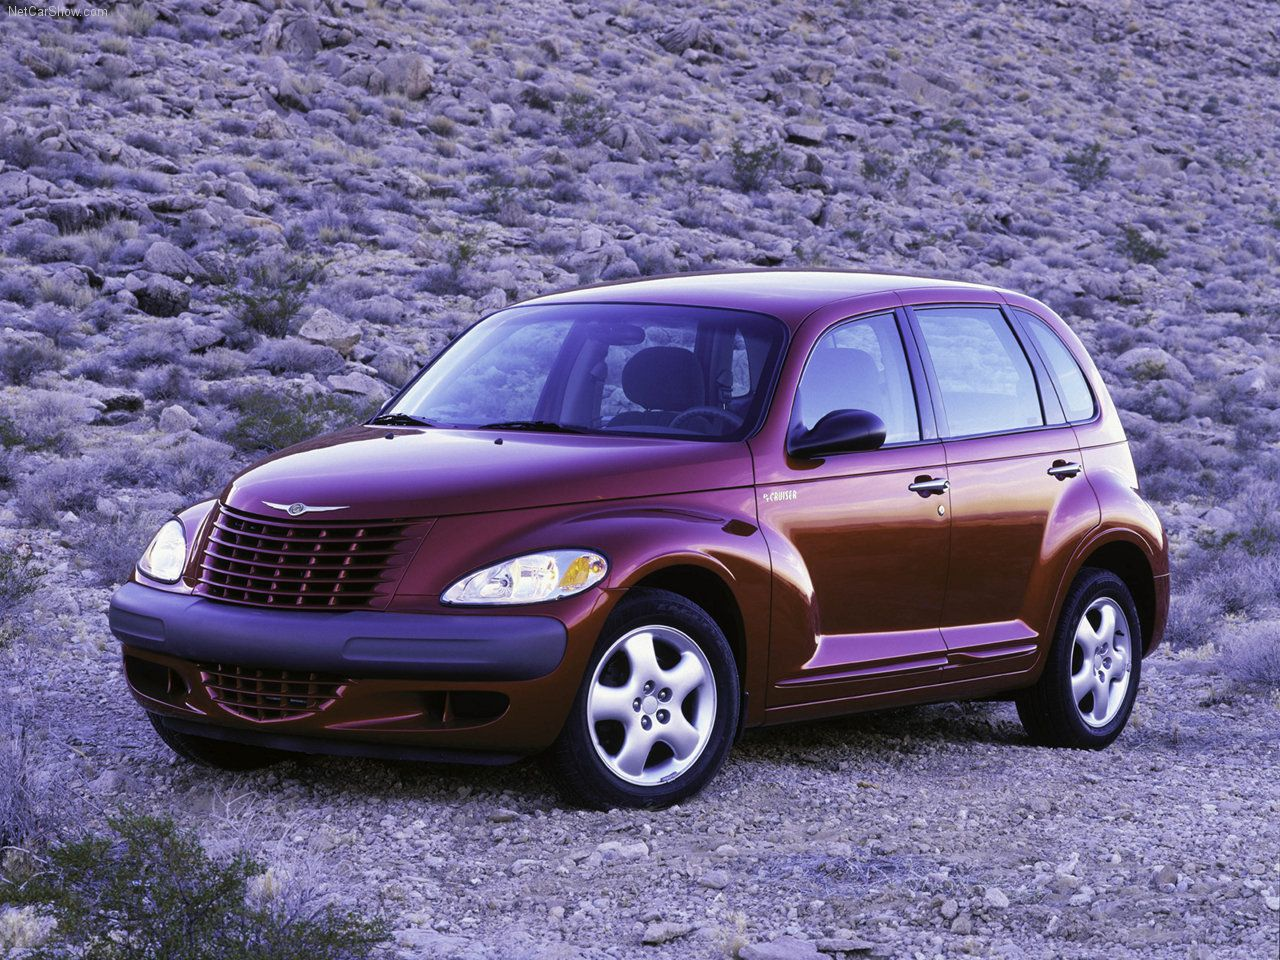 Chrysler PT Cruiser - looks like mine (except a little cleaner and newer - - but I won mine in 2003 so who's complaining!!)